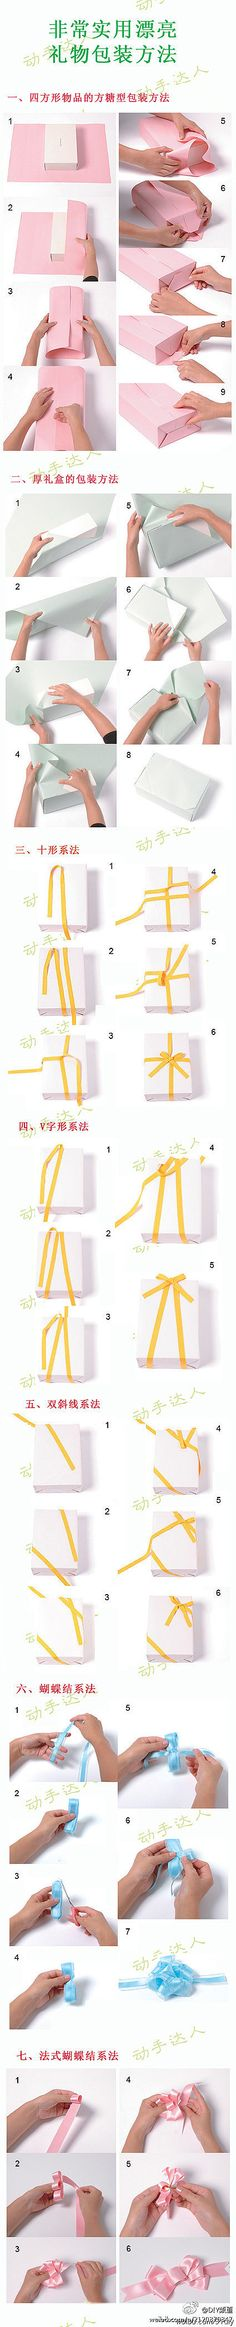 Beautiful handmade DIY gift ideas and practical 〖〗 How can packaging methods ceremony ...